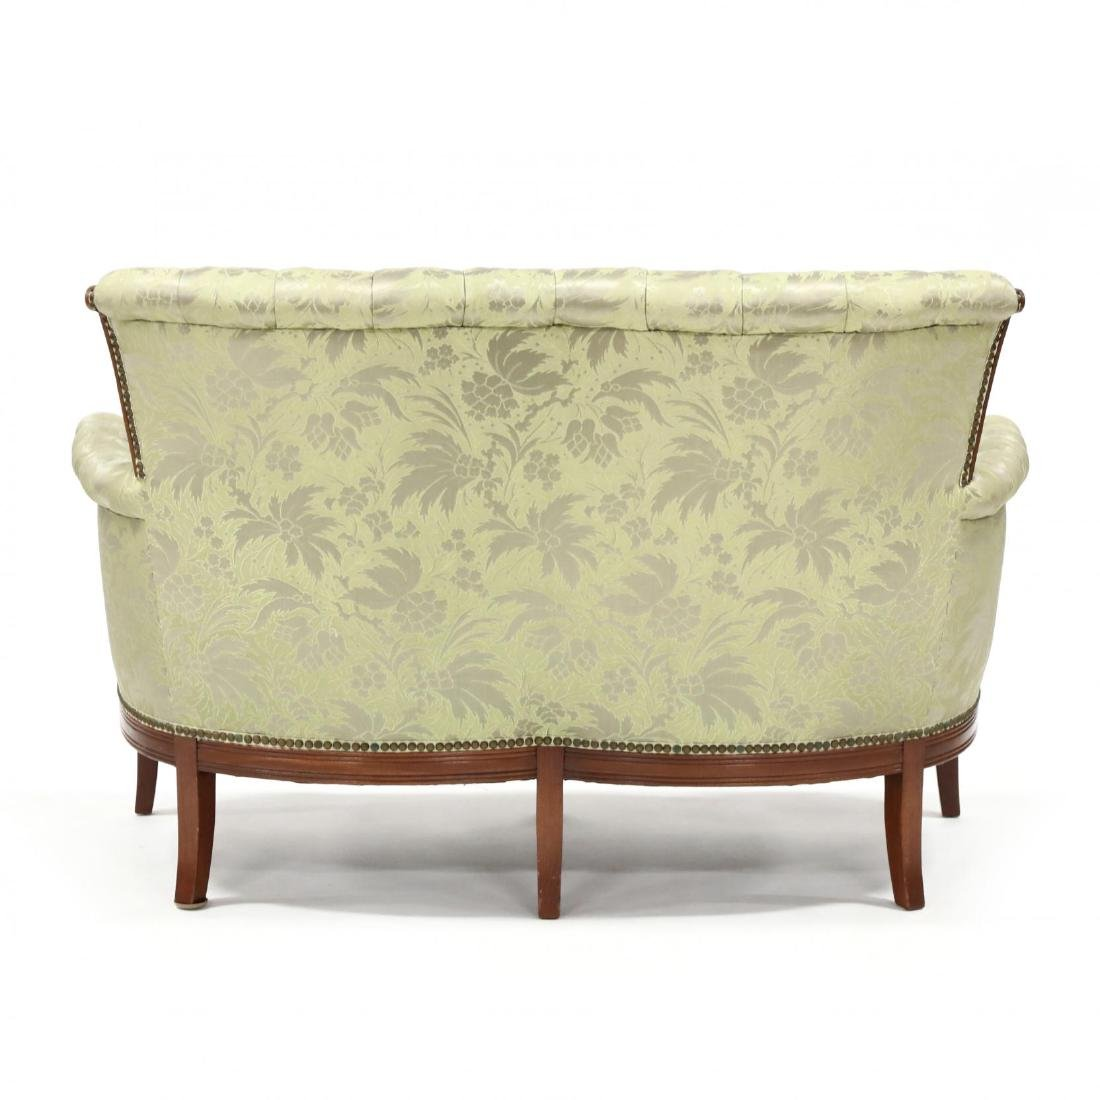 Brandt, French Provincial Style Settee - 5